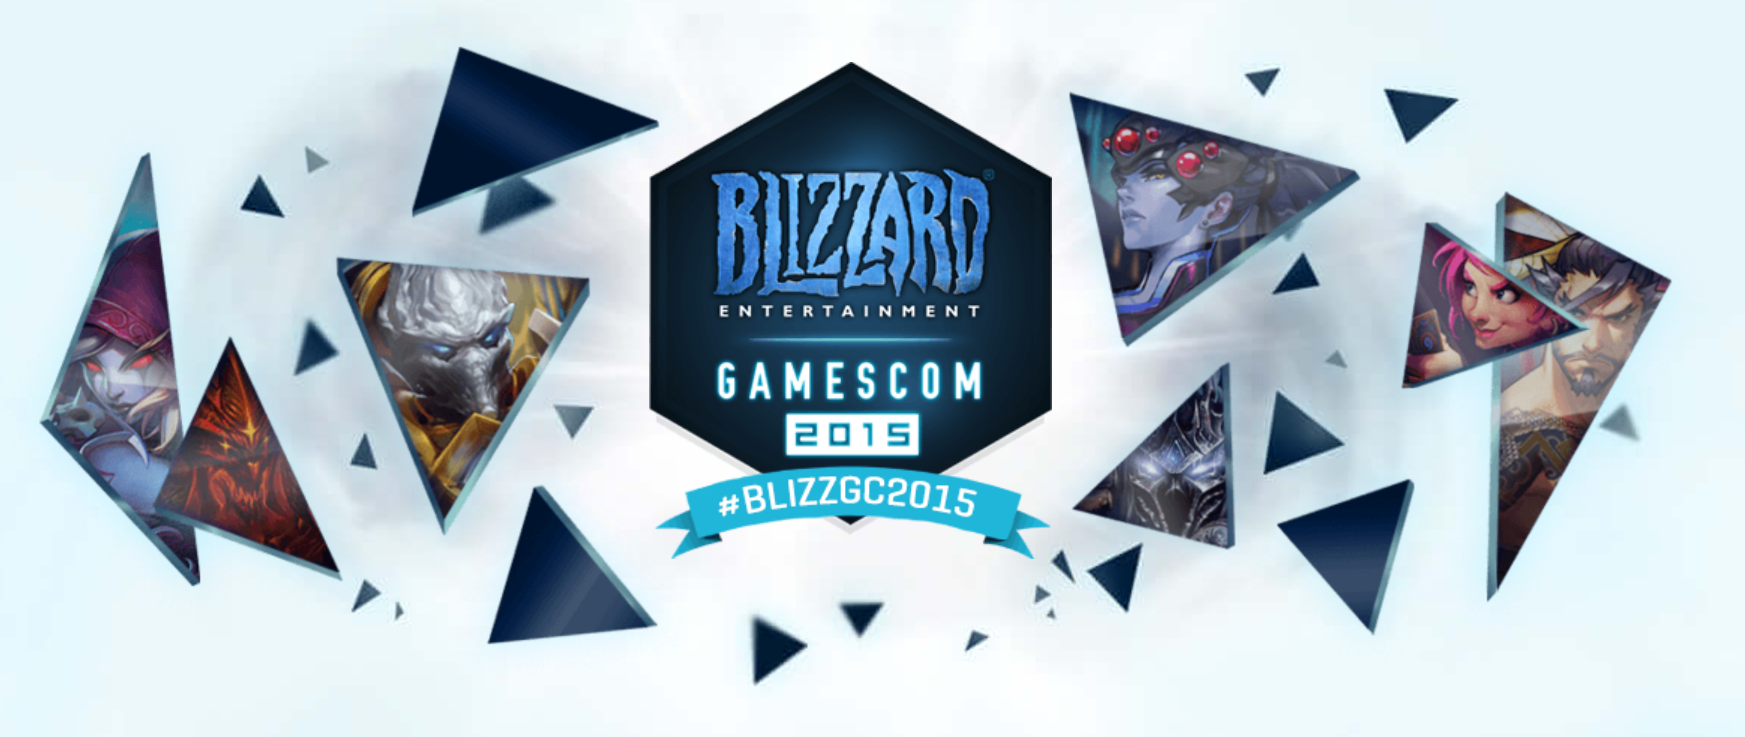 Blizzard Reveals New Content for StarCraft II, Hearthstone, Overwatch and Heroes of the Storm